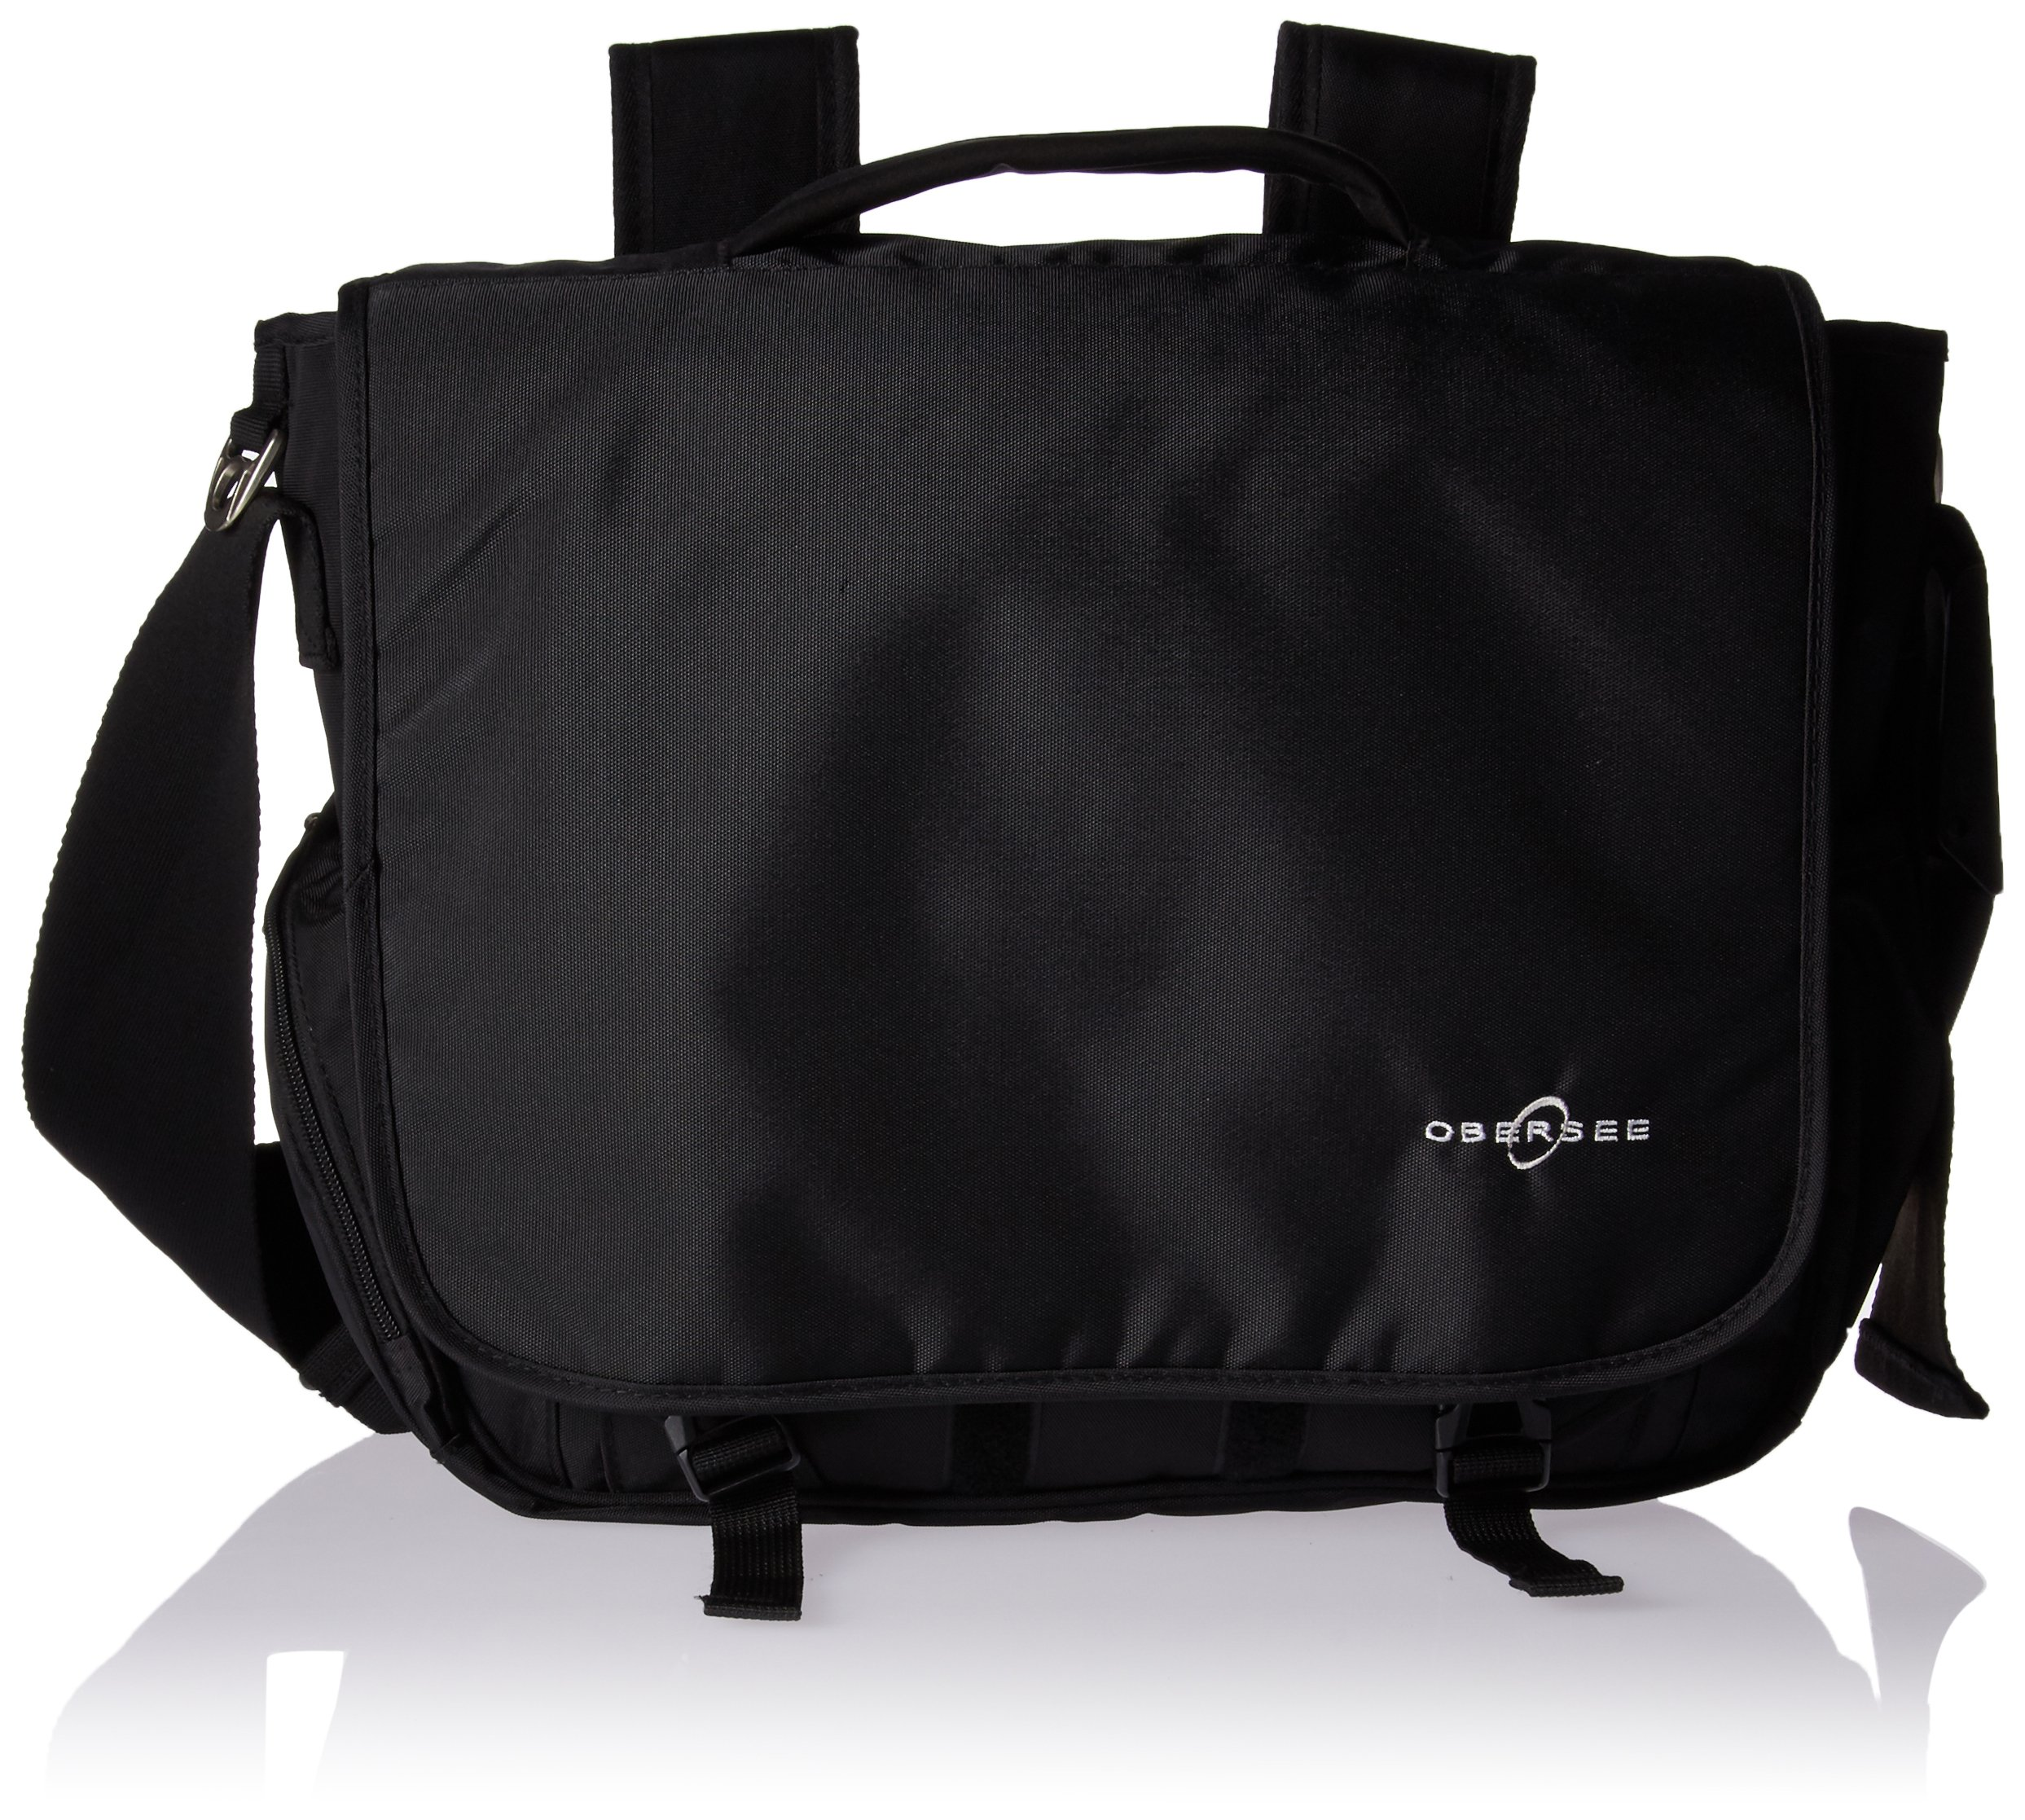 Obersee Madrid Convertible Diaper Backpack Messenger Bag, Black by Obersee